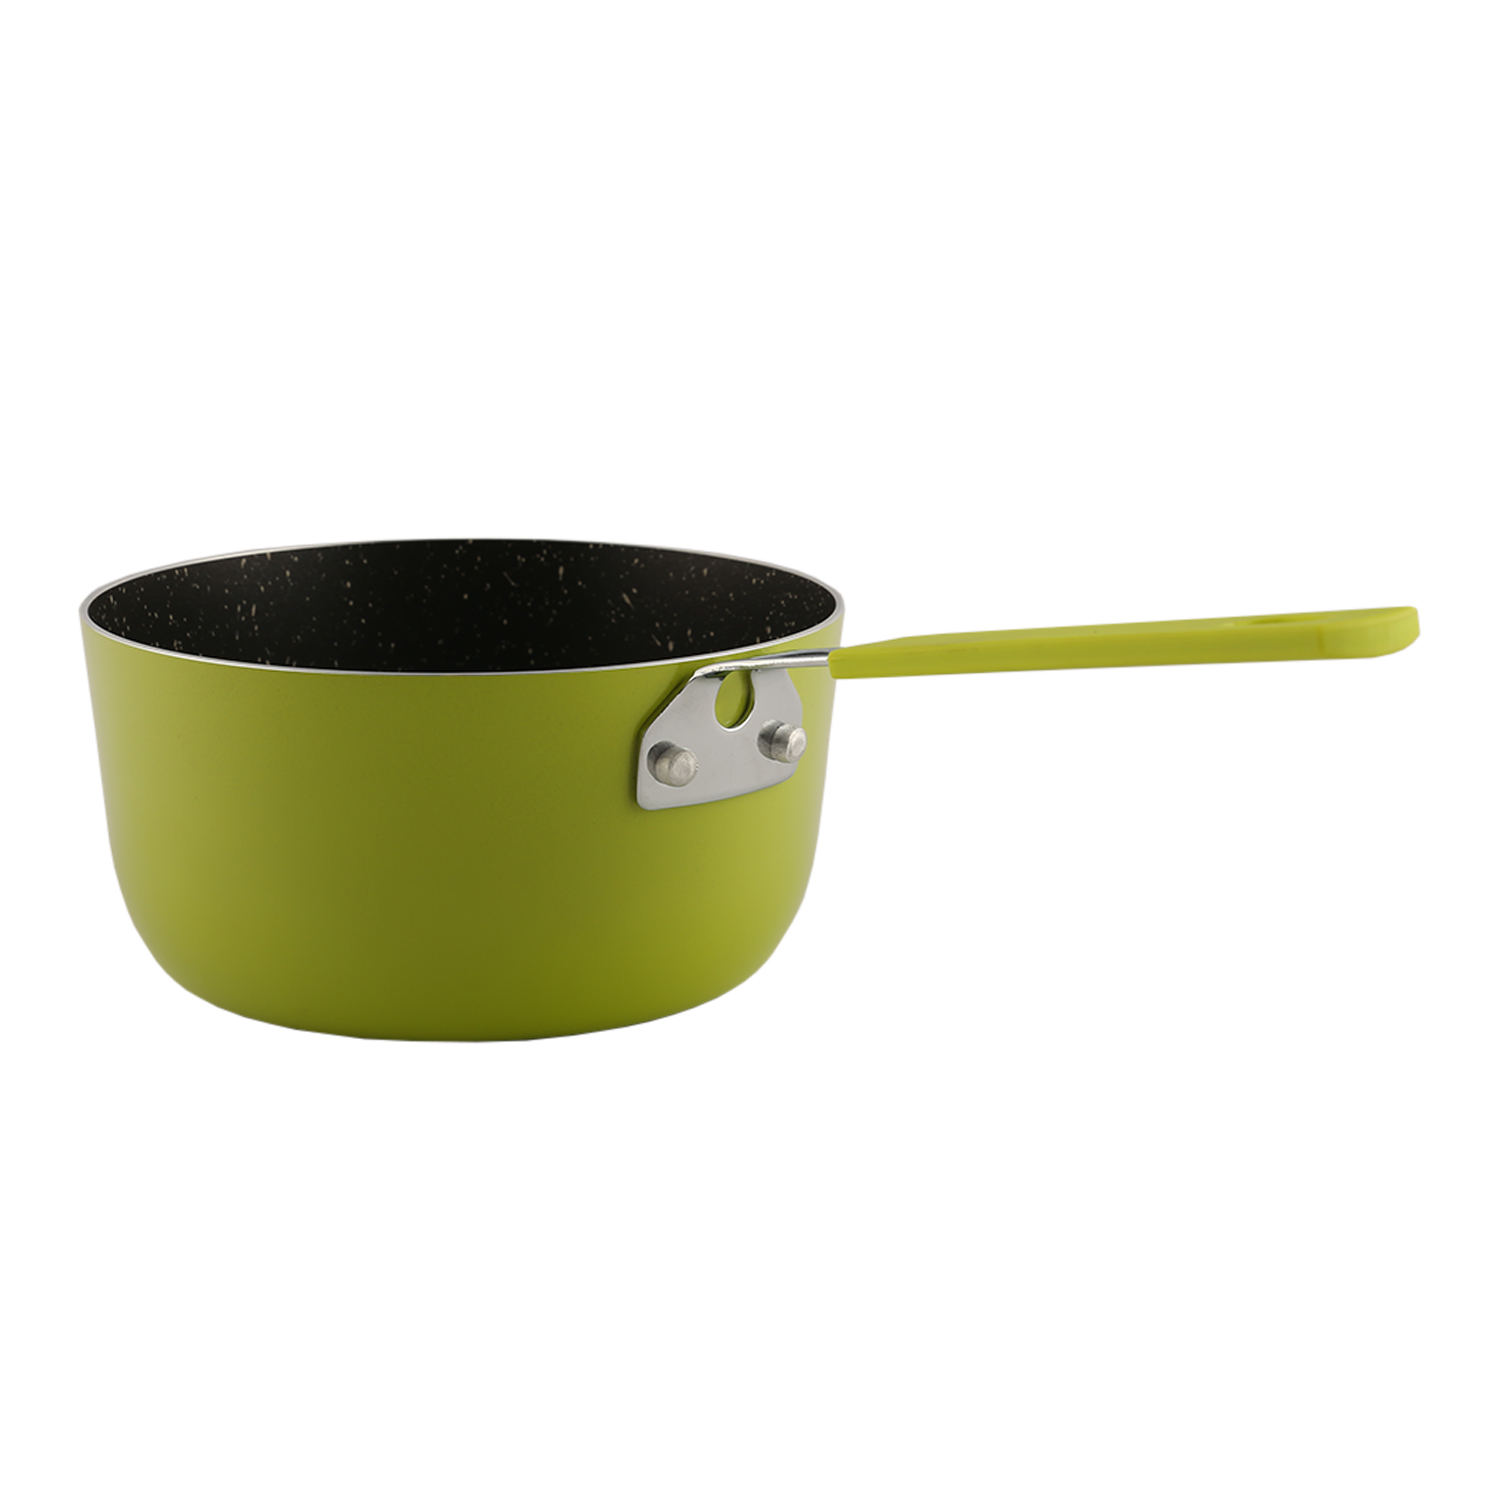 Mini Sauce Pan 14Cm Lime Pressed Alluminium Sauce Pans in Lime Colour by Living Essence